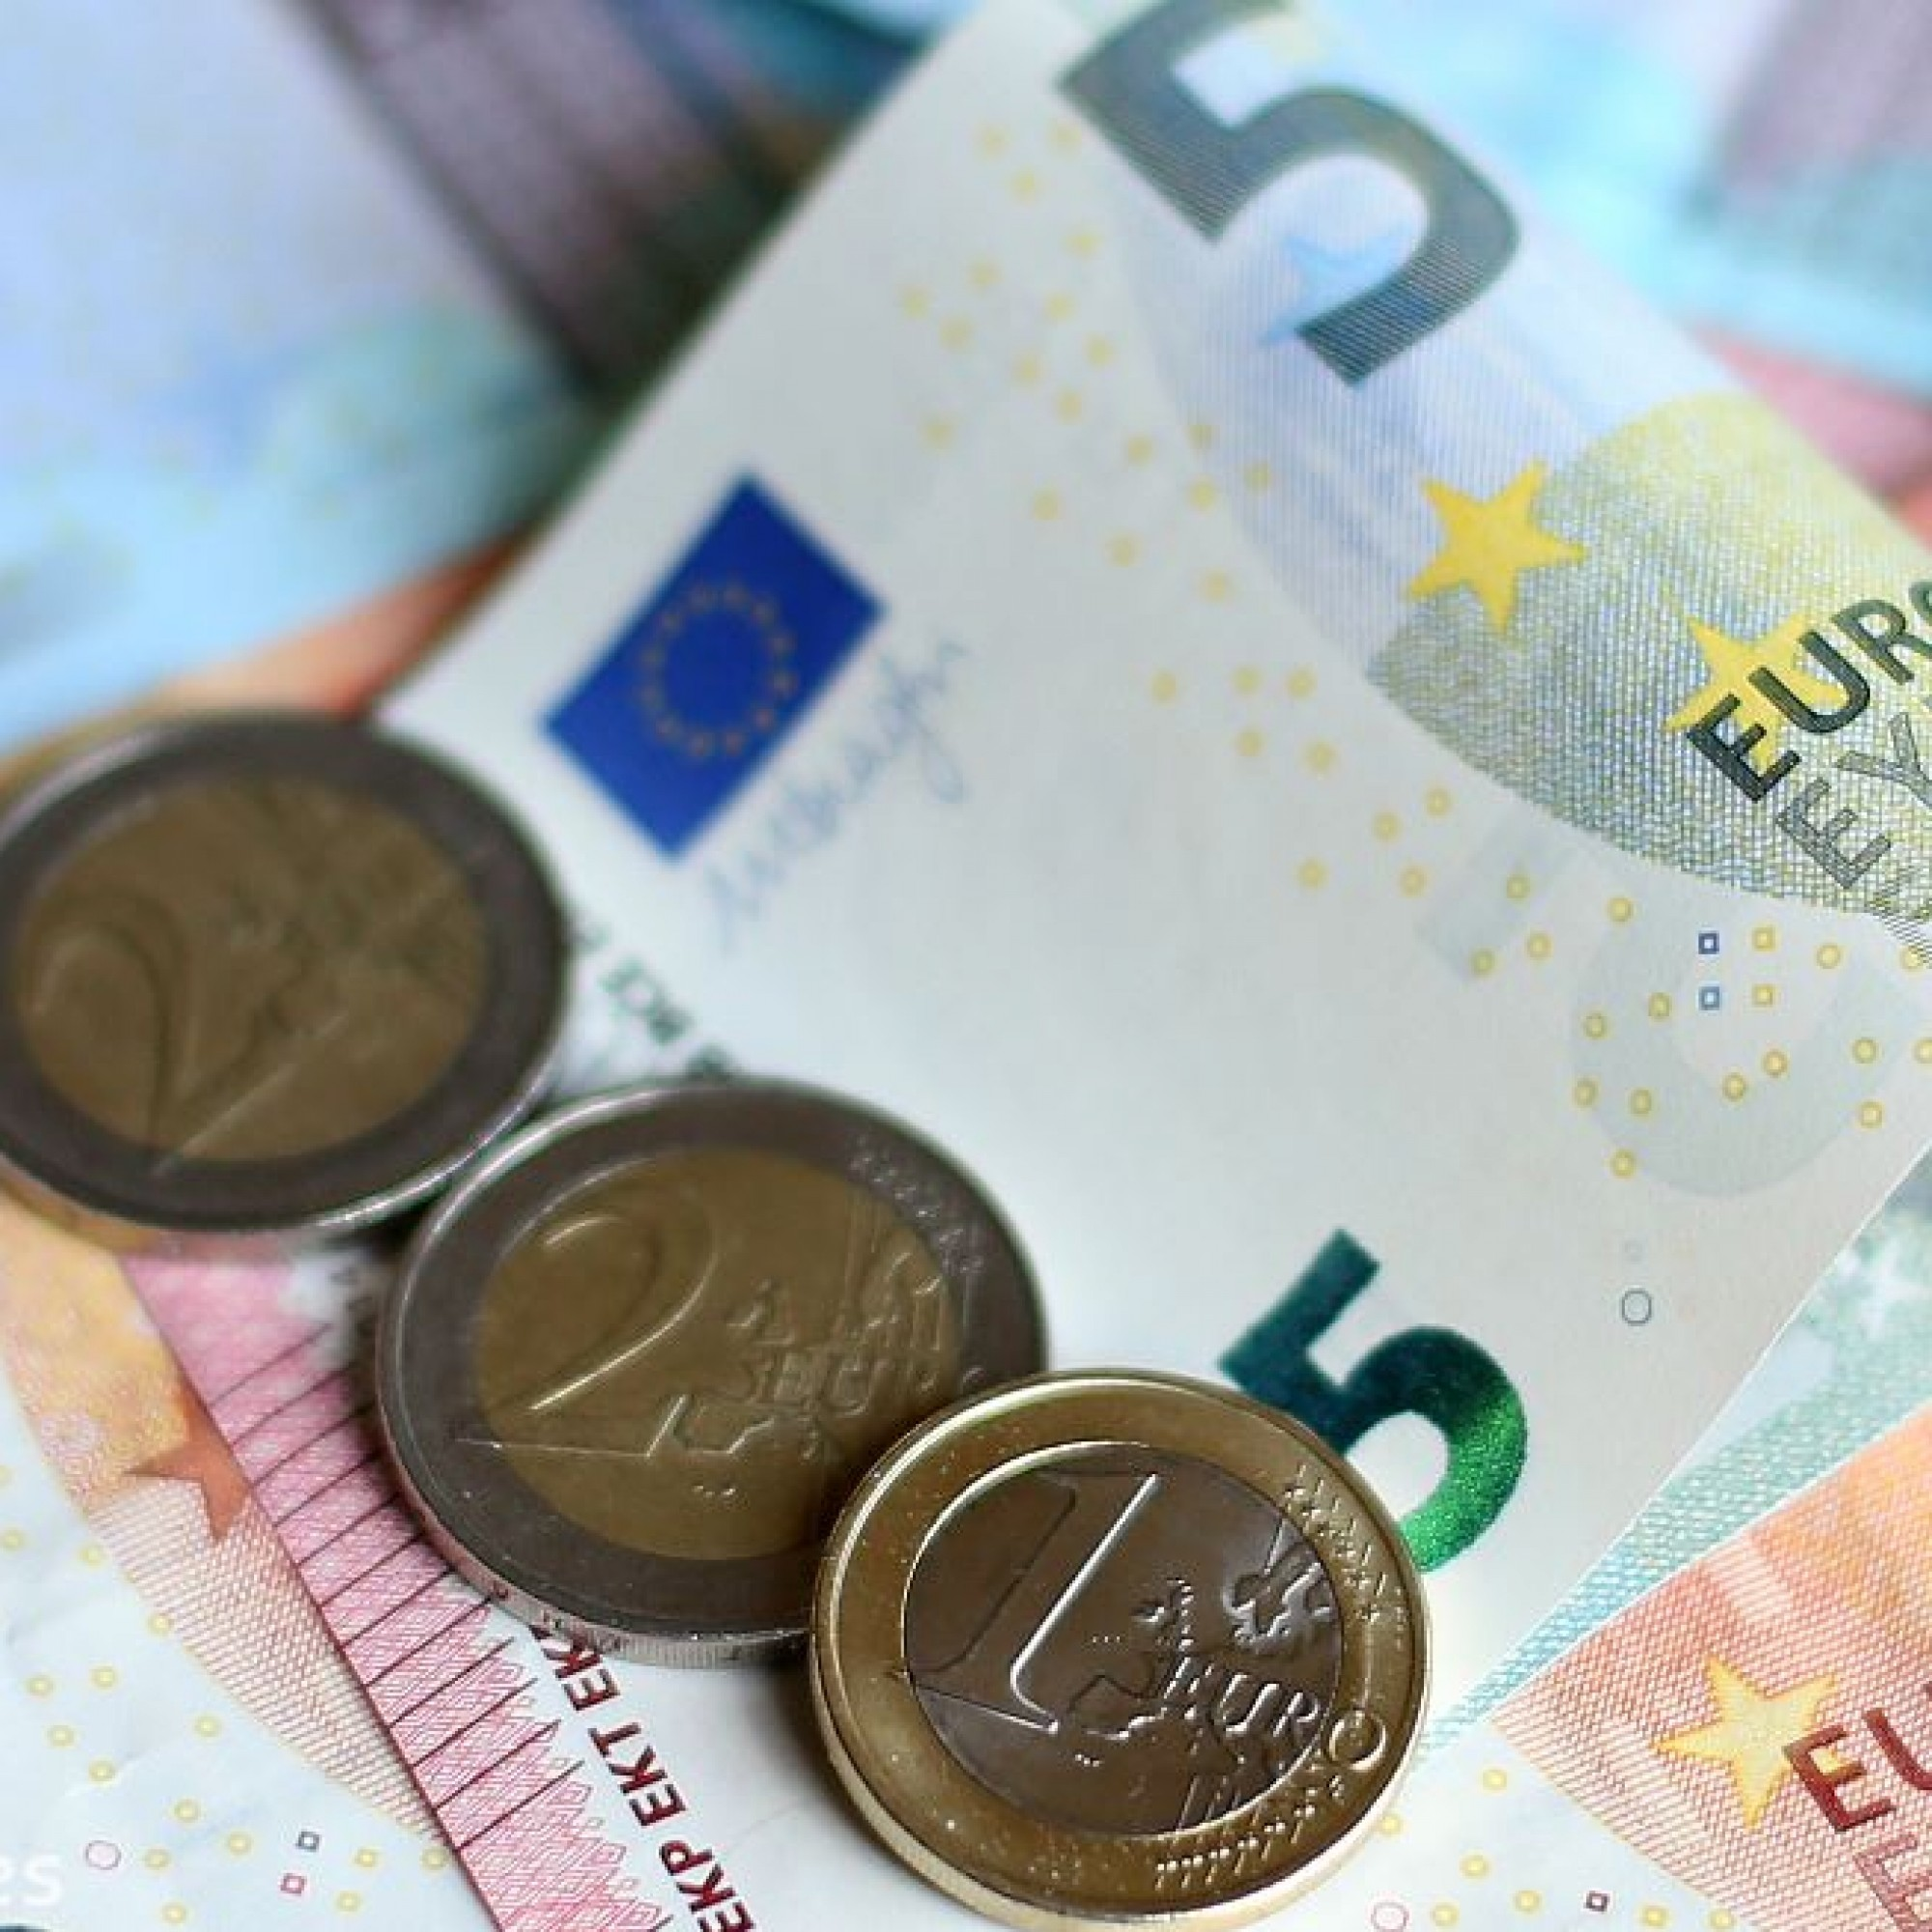 What will influence voters? The economy, health service reform and water charges